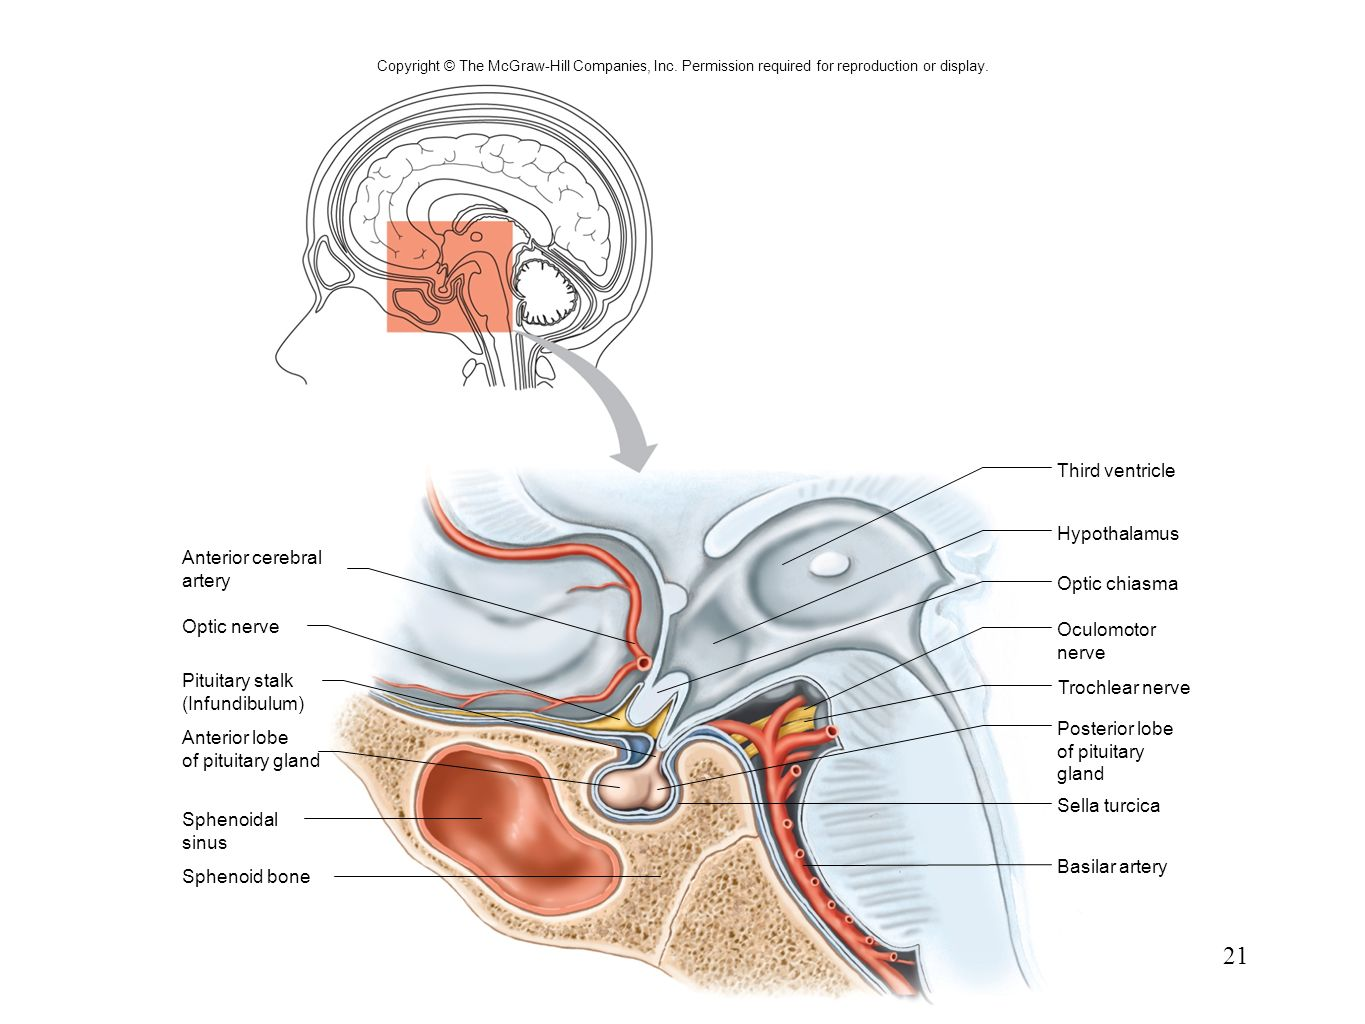 3rd ventricle anatomy 3852159 - follow4more.info